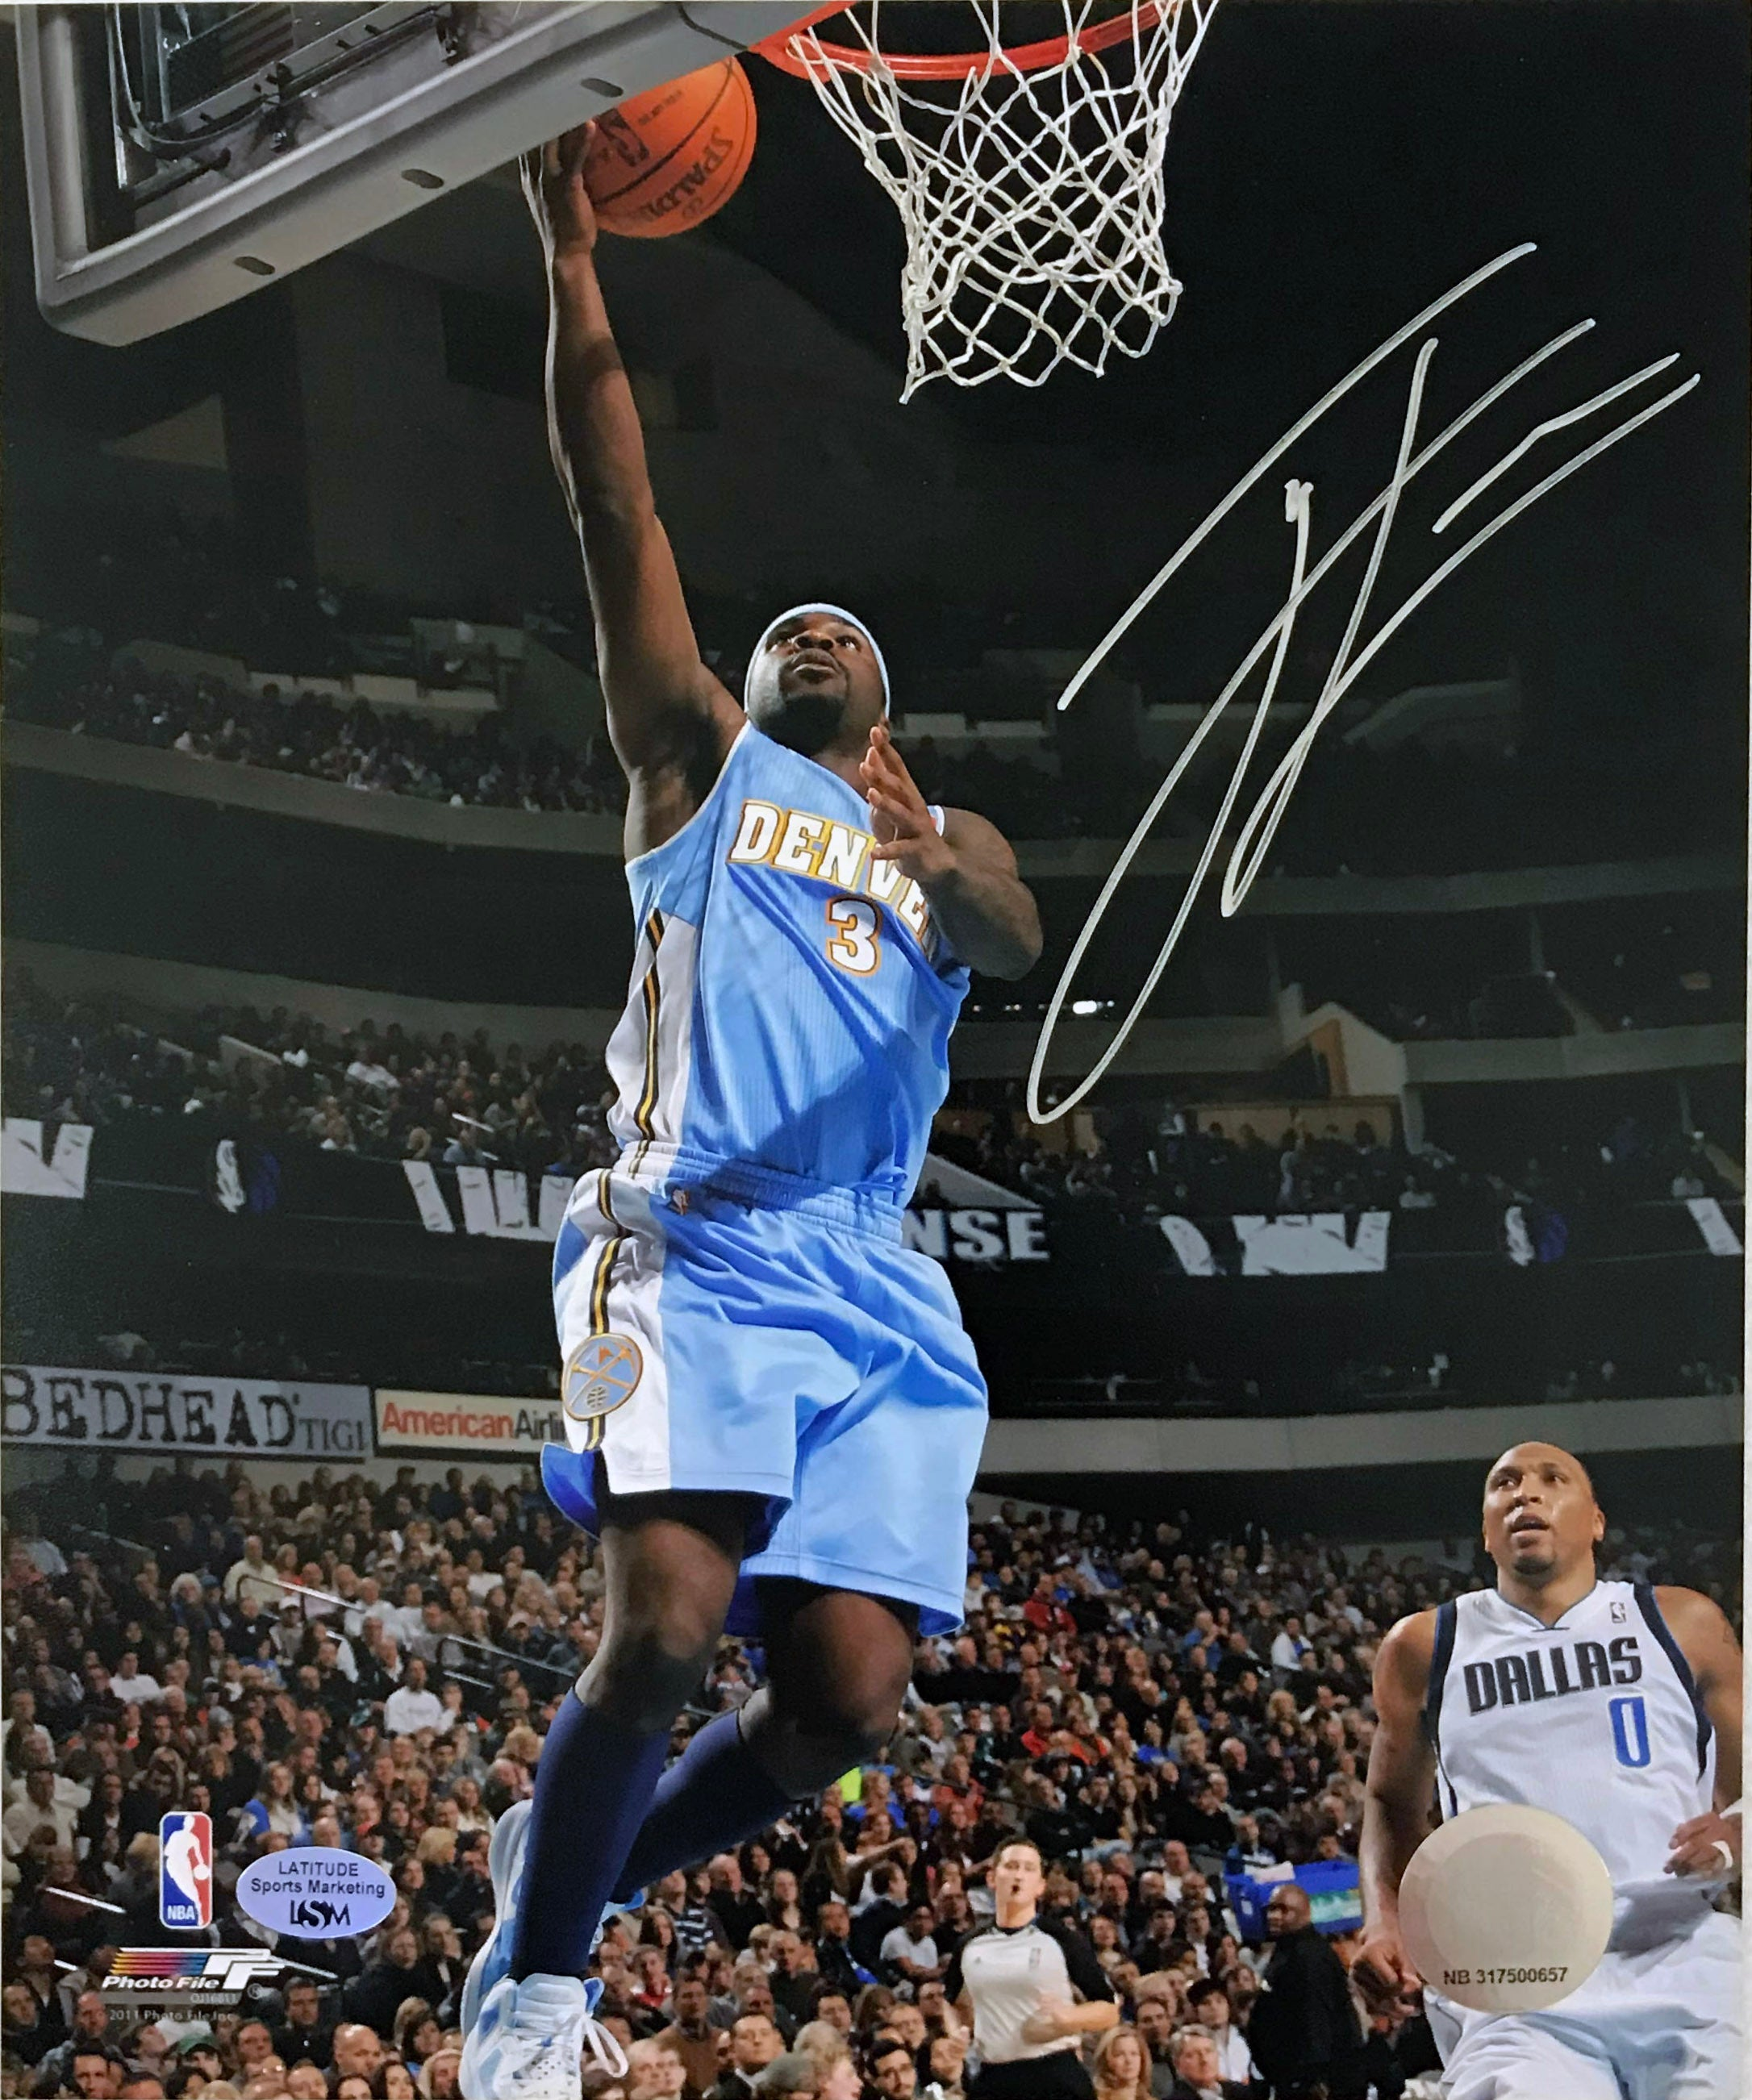 Ty Lawson Signed 8x10 Photo (Blue Uniform)